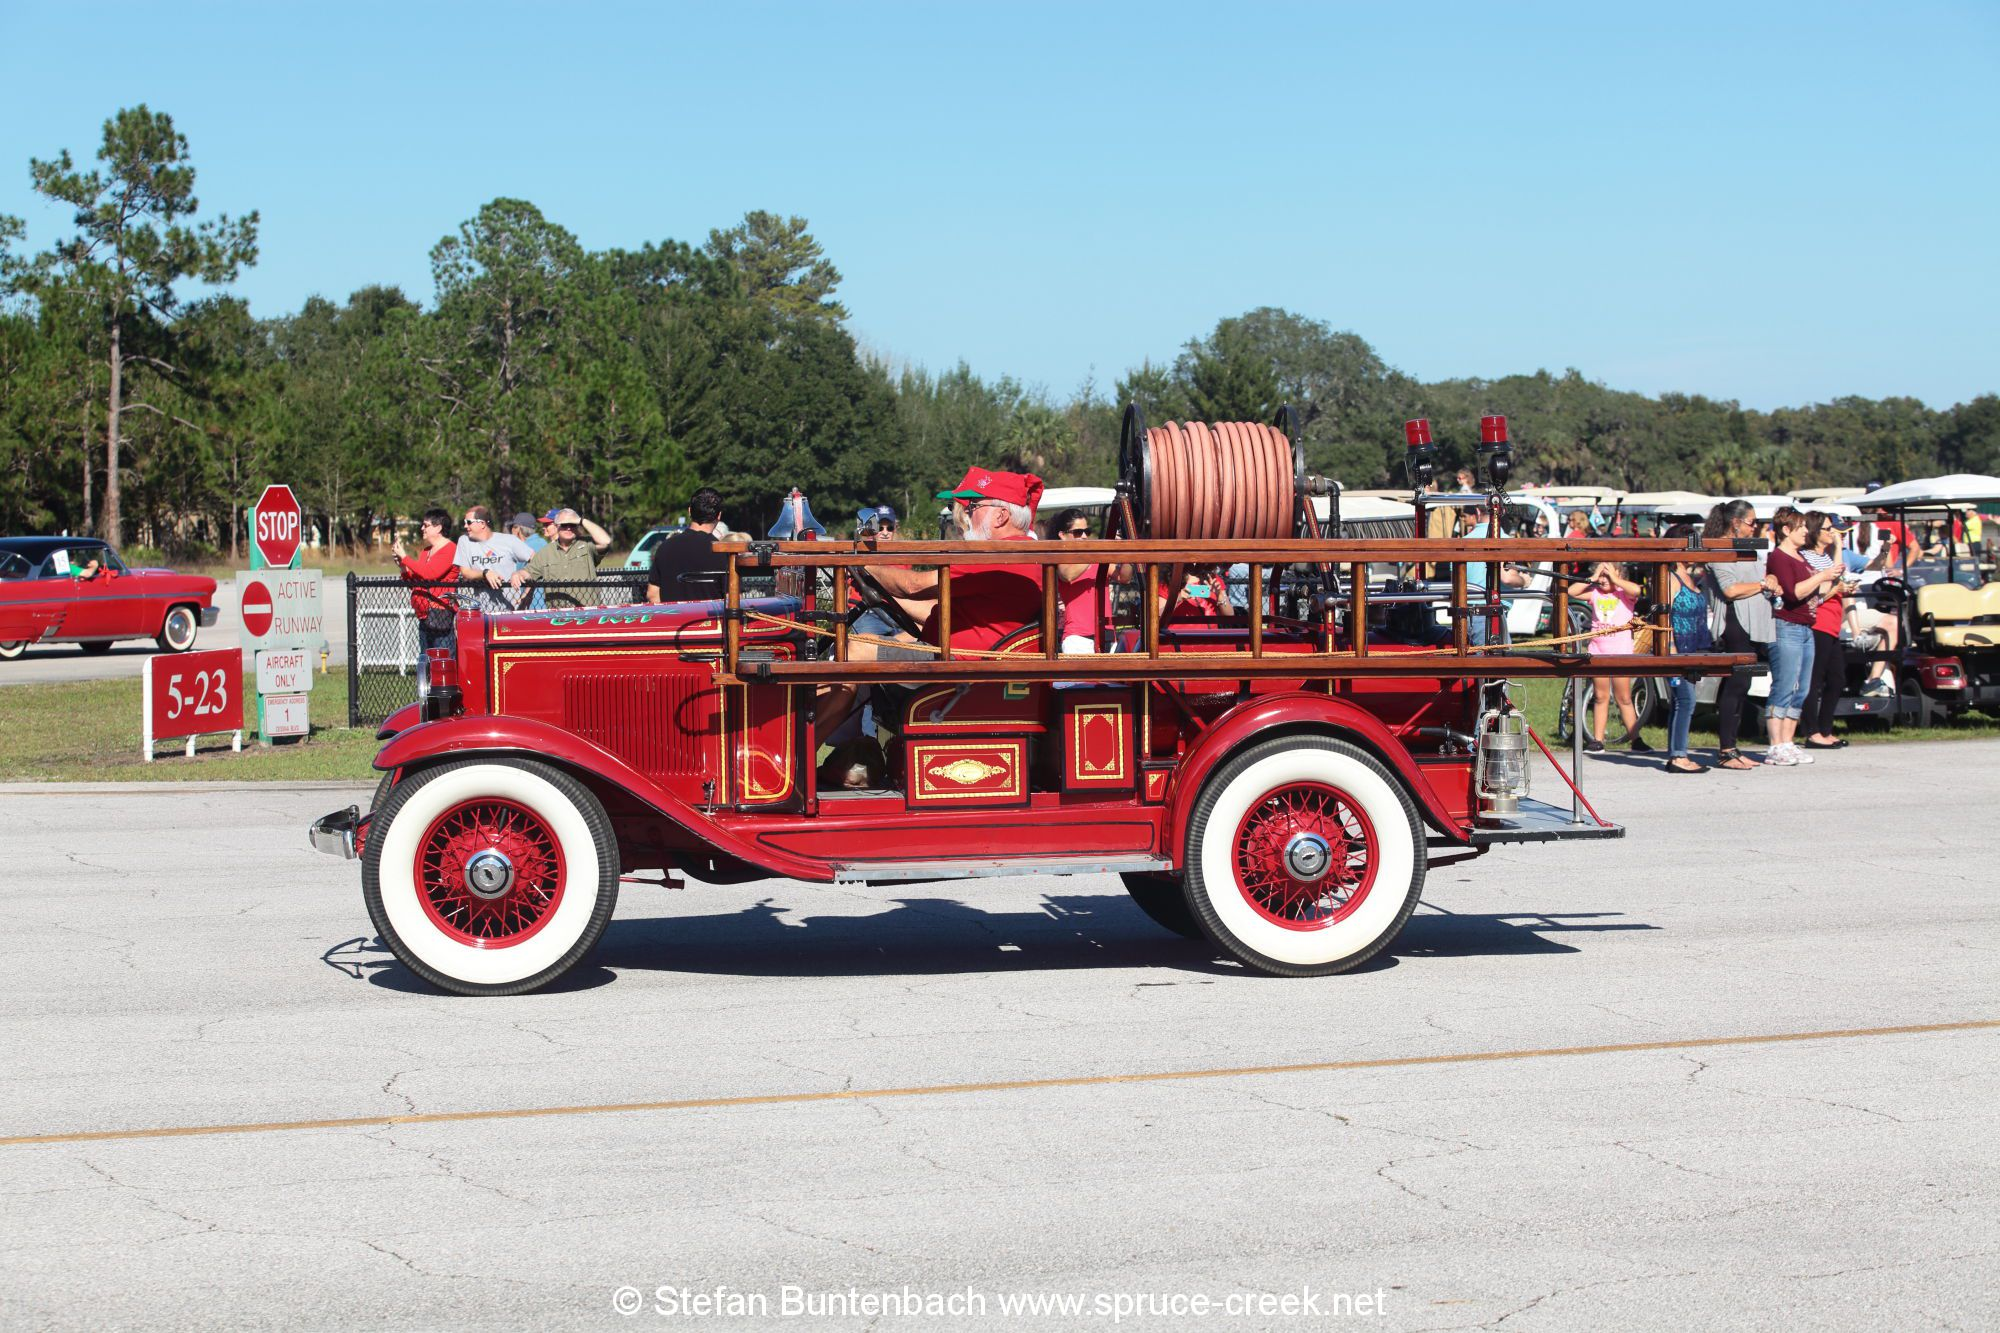 Spruce-Creek-Toyparade-2015- IMG_1540